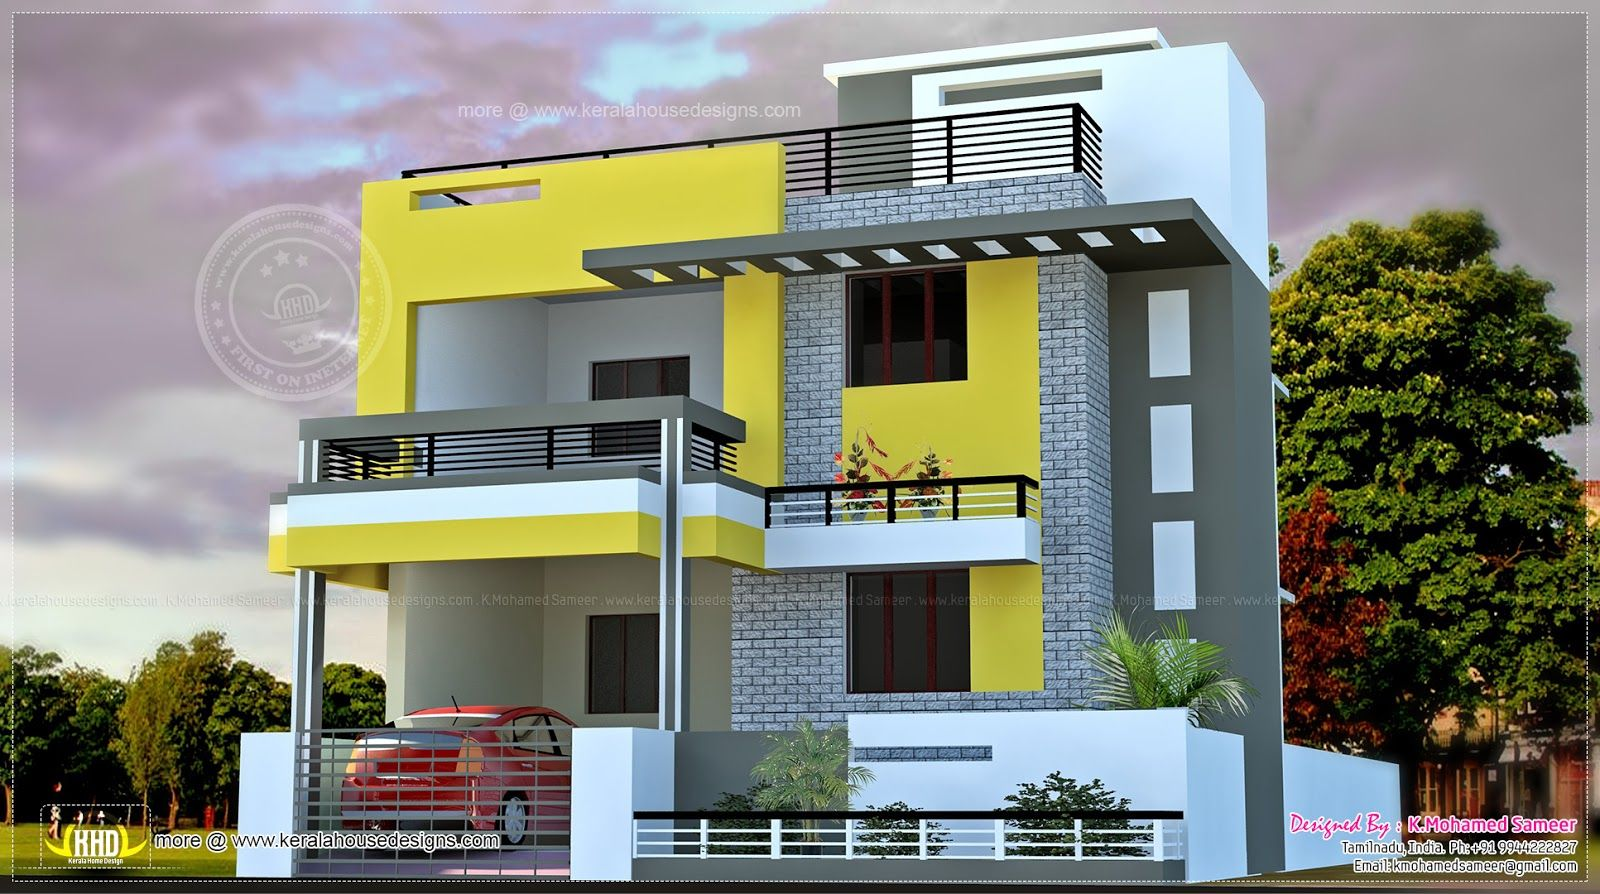 Elevations Of Residential Buildings In Indian Photo Gallery Google Search